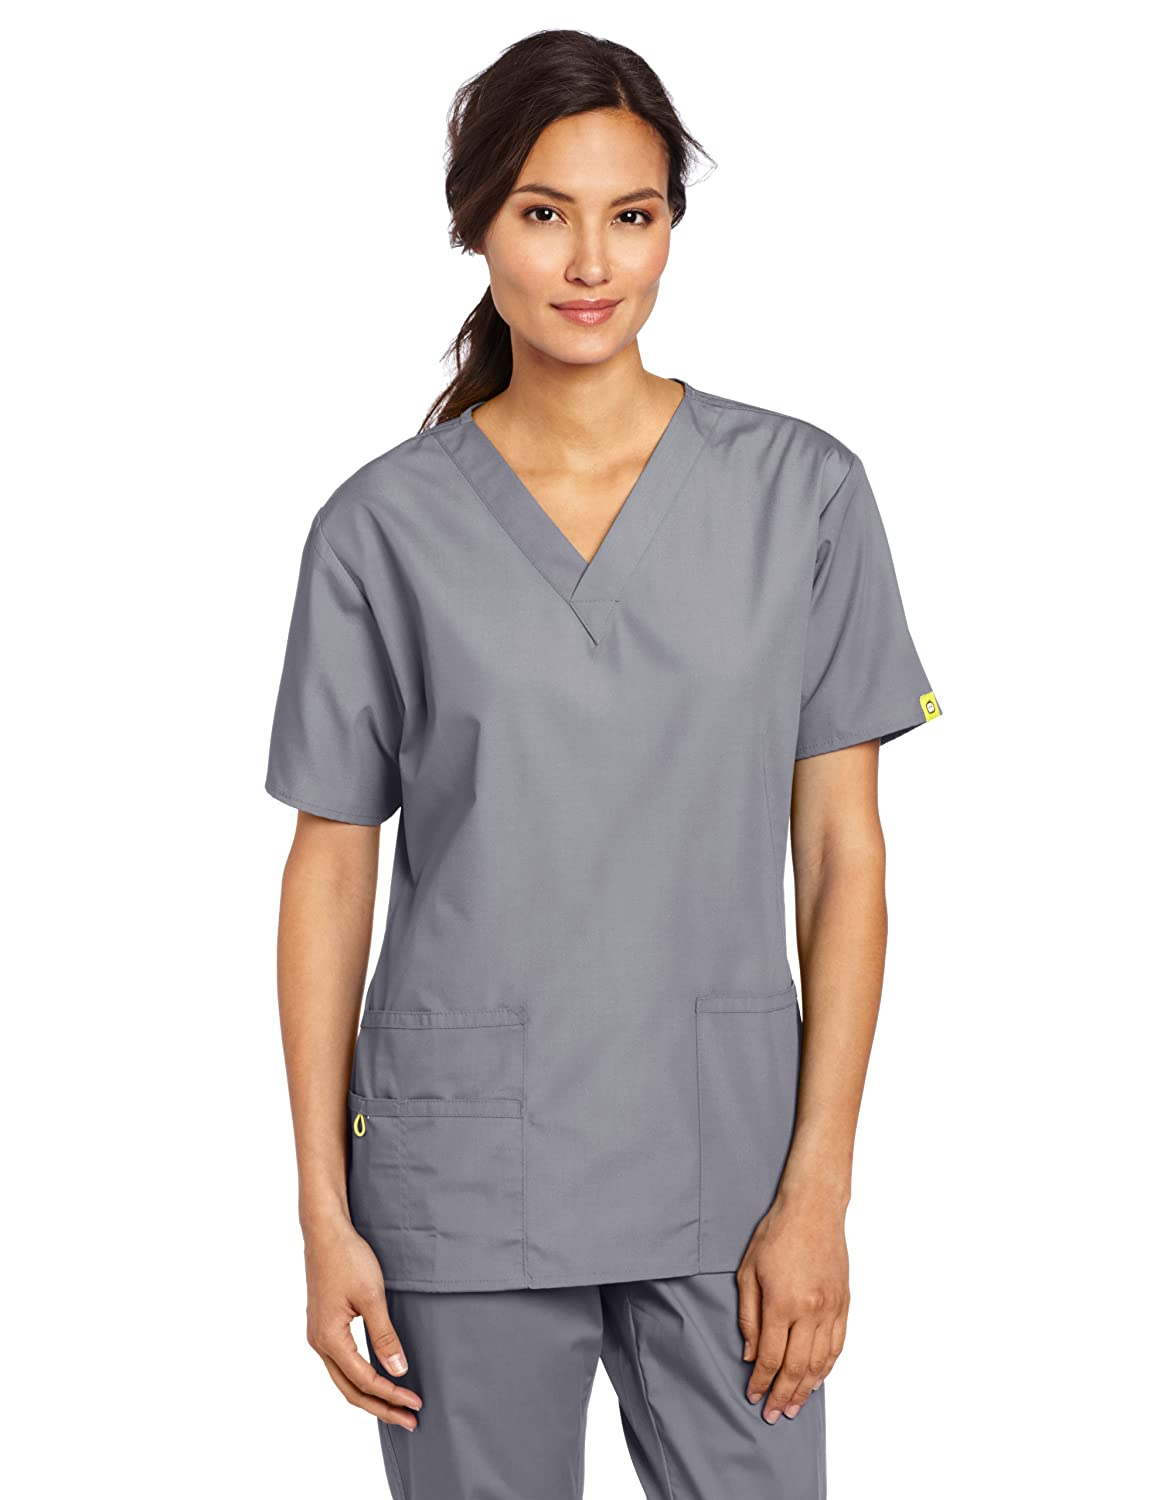 6b3c7b3a8d9 WonderWink Womens Plus Size Scrubs Bravo 5-Pocket V-Neck Top WonderWink  Women' ...